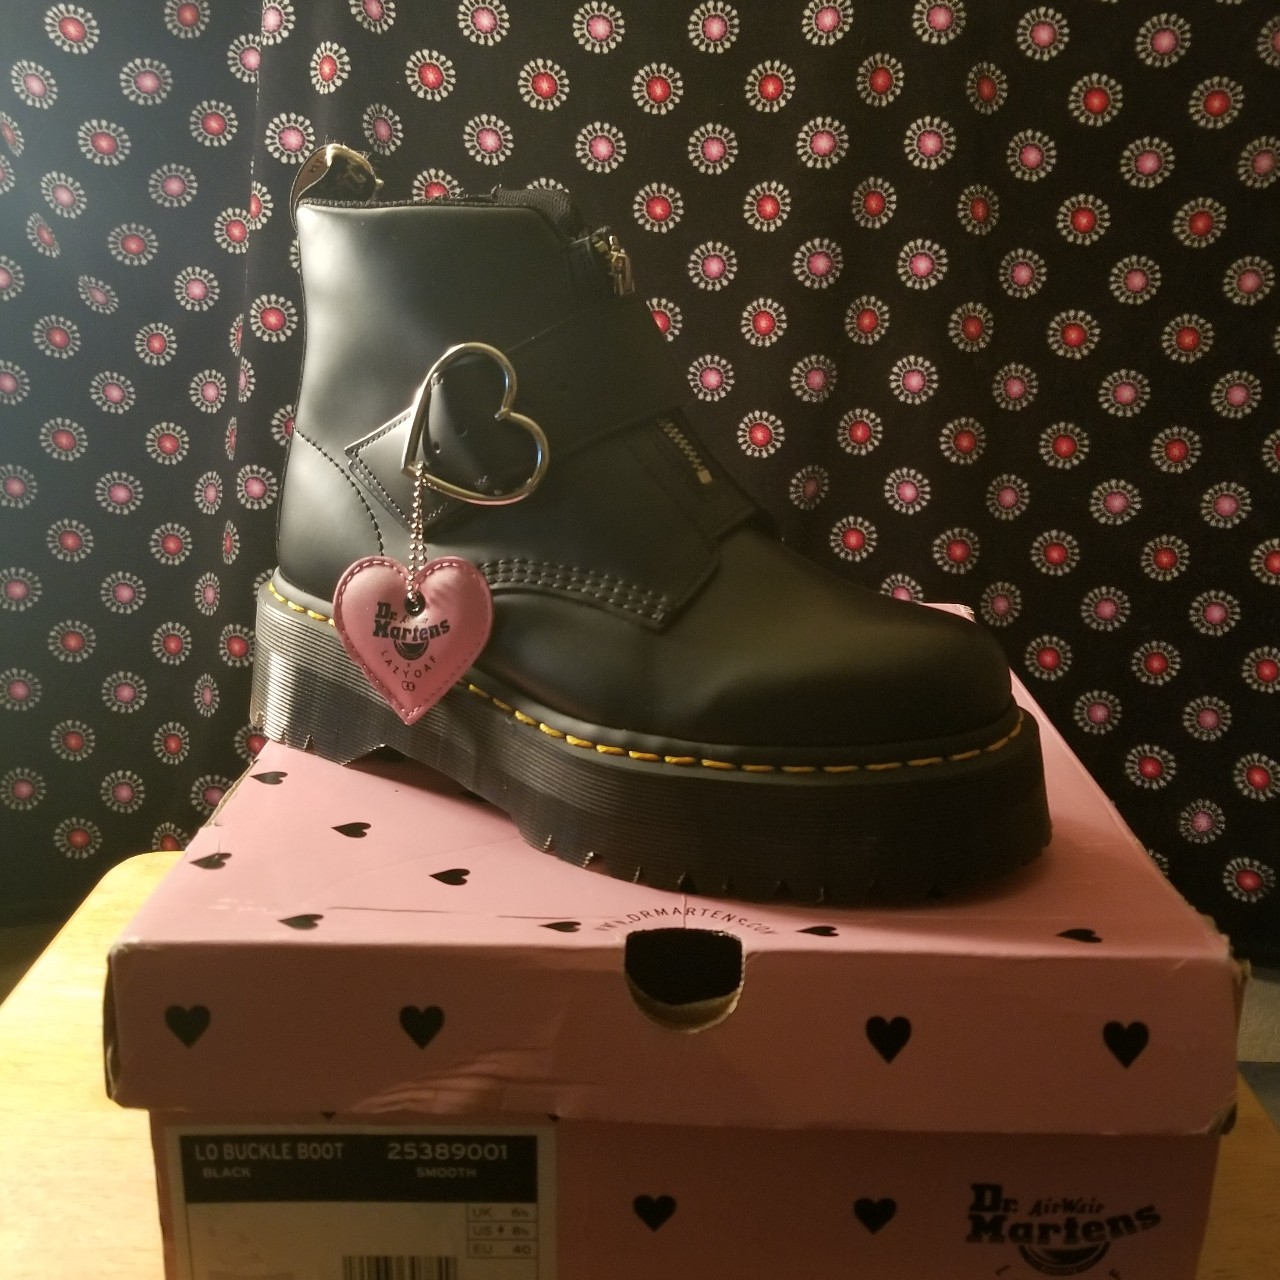 differently lower price with beauty NWT Dr. Martens x Lazy Oaf Buckle Boot (sold out on... - Depop